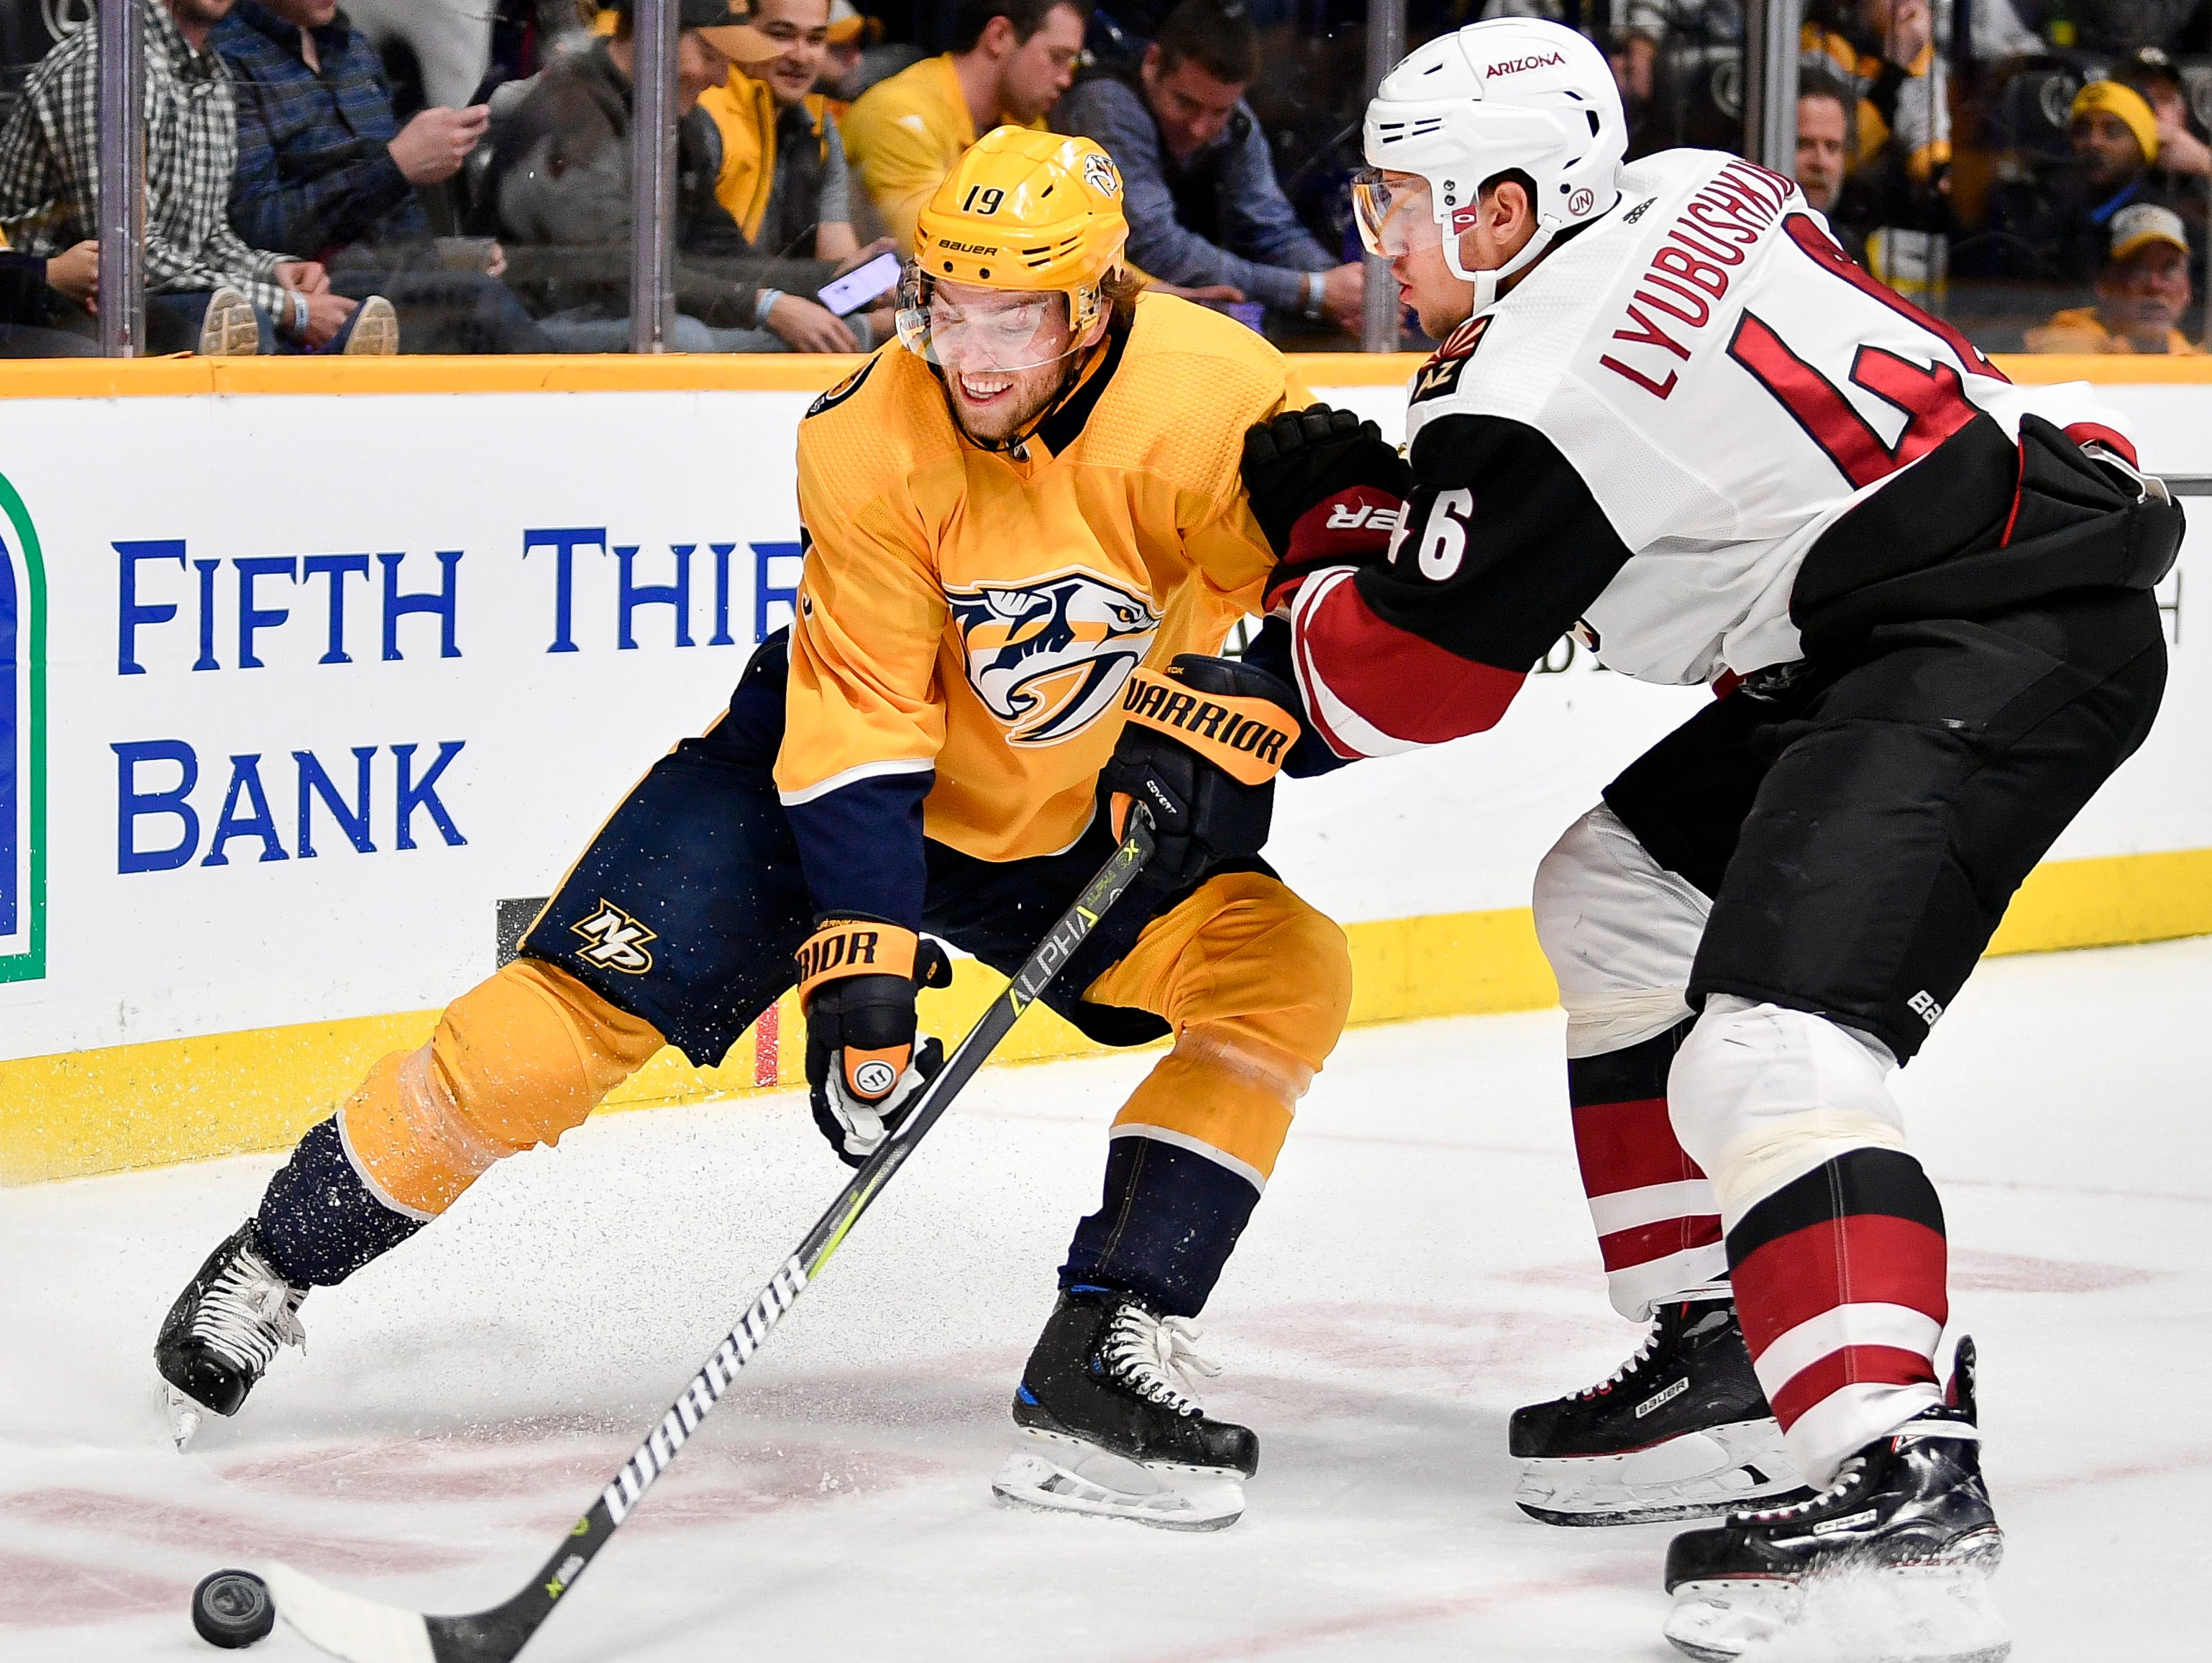 Nashville Predators center Calle Jarnkrok (19) fights for the puck with Arizona Coyotes defenseman Ilya Lyubushkin (46) during the first period at Bridgestone Arena in Nashville, Tenn., Tuesday, Feb. 5, 2019.